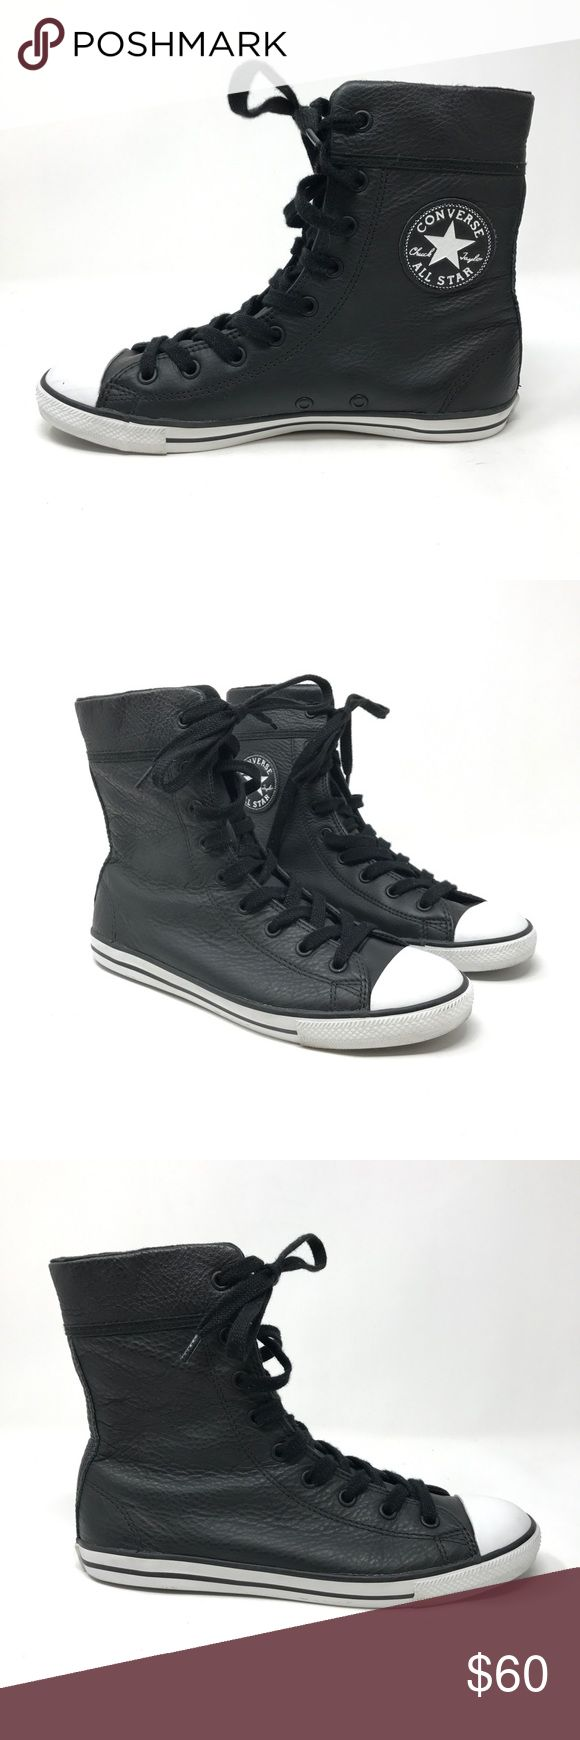 Converse Chuck Taylor Dainy Xhi Sz 7 Blk Leather Converse Chuck Taylor Dainy Xhi Sz 7 Blk Leather  Size: Women's Sz 7 Color: Black Style Name/Number: Chuck Taylor Dainy Xhi All Stars High Tops  In good preowned condition with no known flaws and light overall wear. Converse Shoes Sneakers